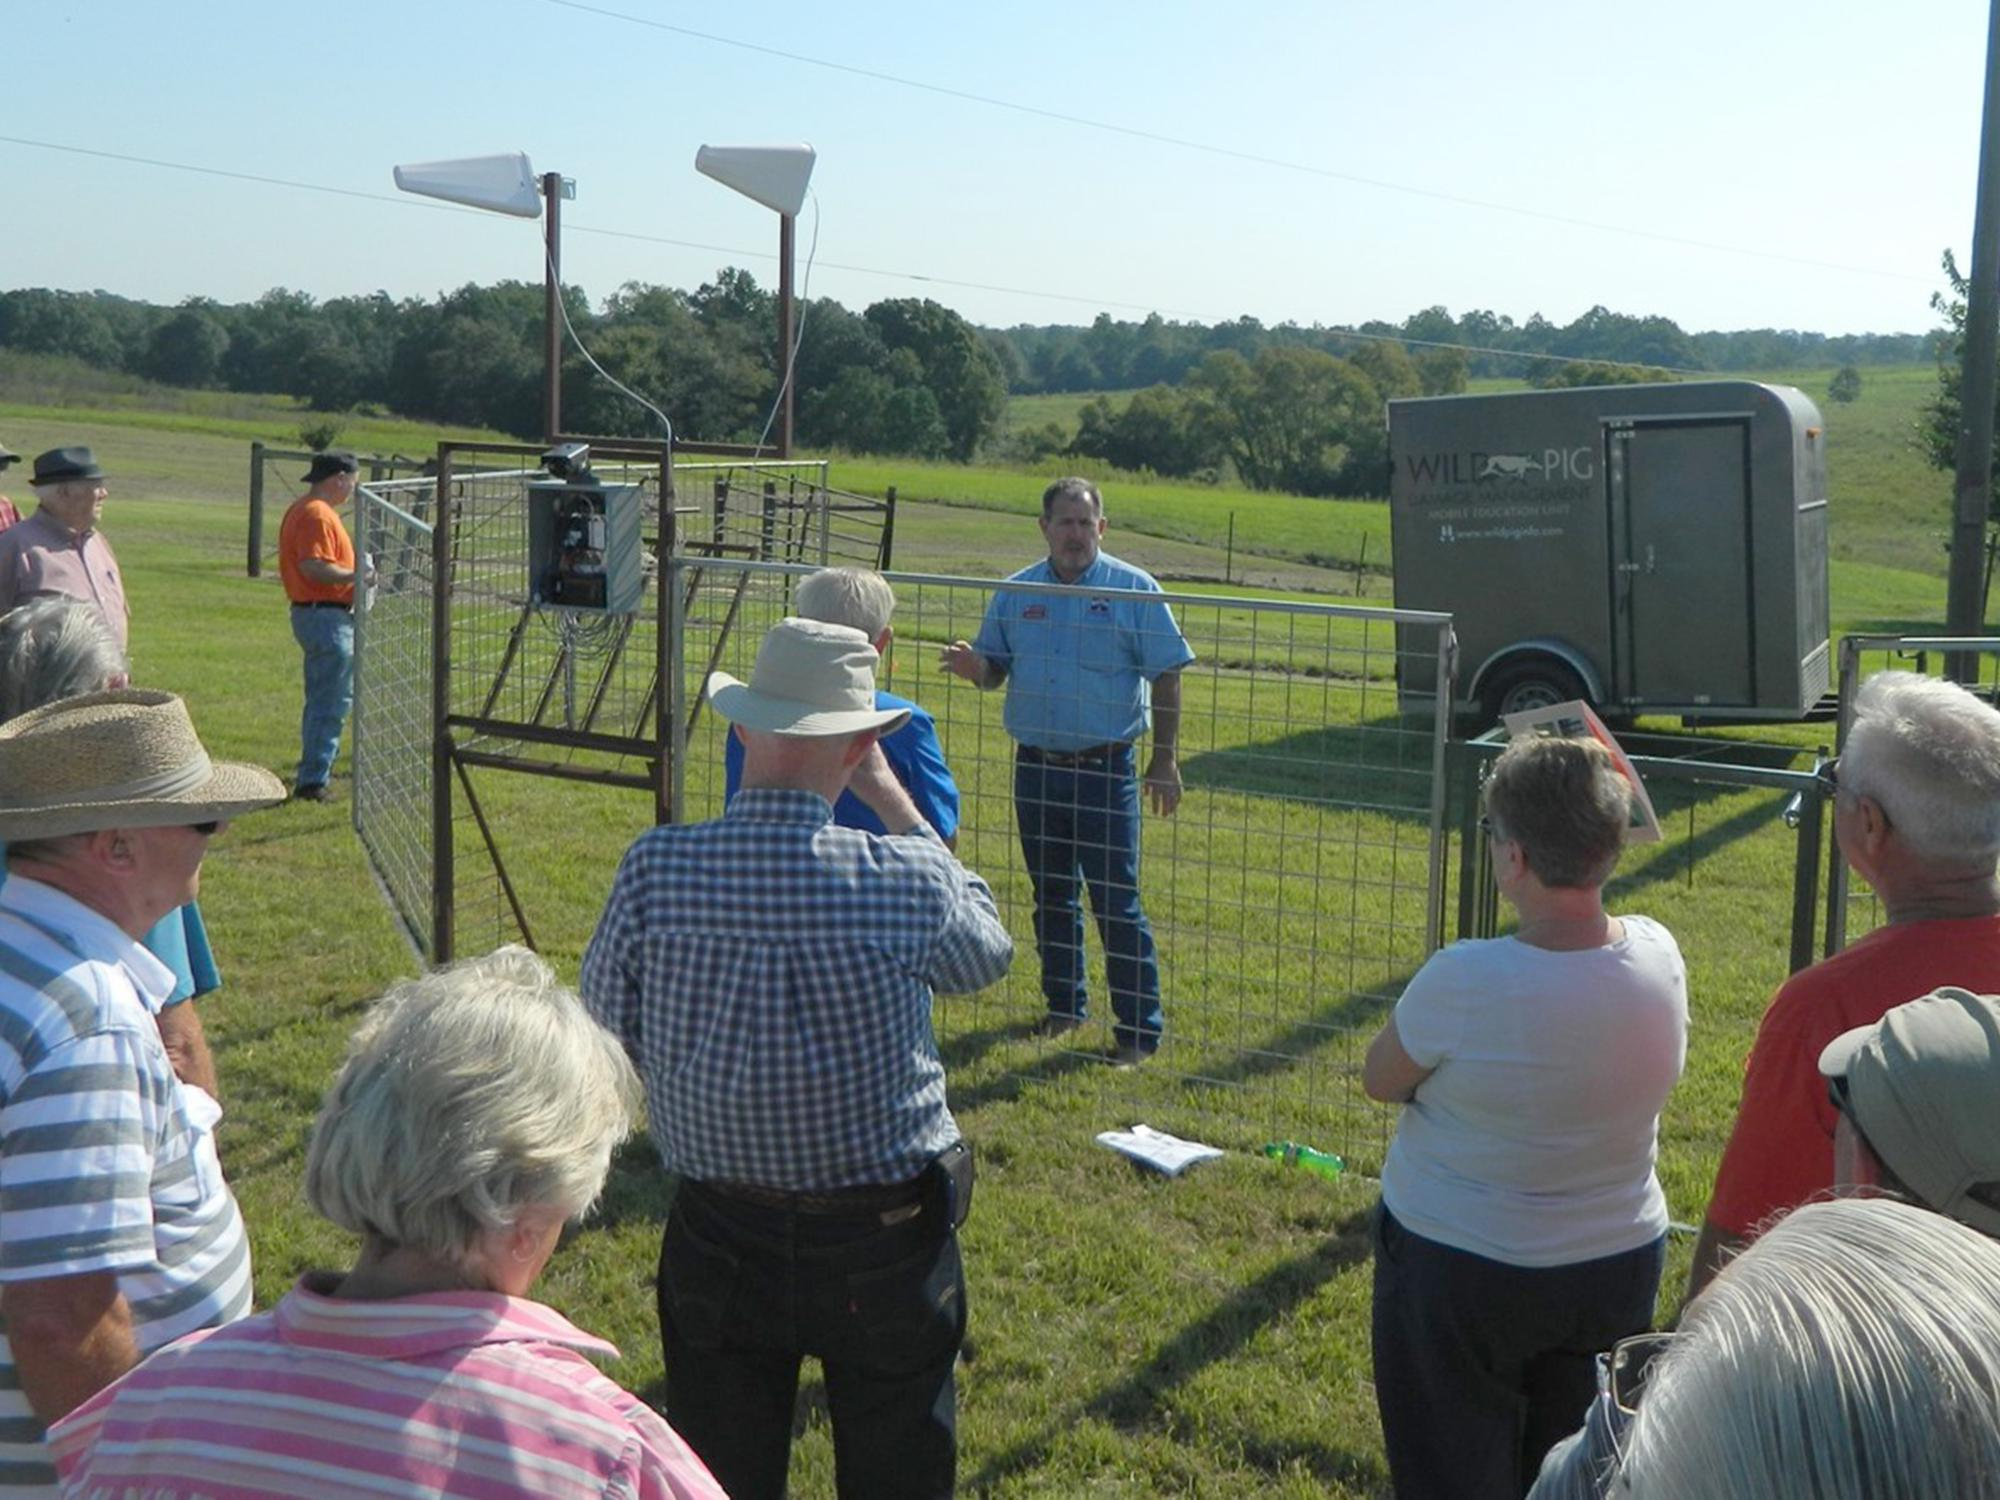 A group of adults gather outside a metal corral with electronics attached to it with a speaker inside the trap.